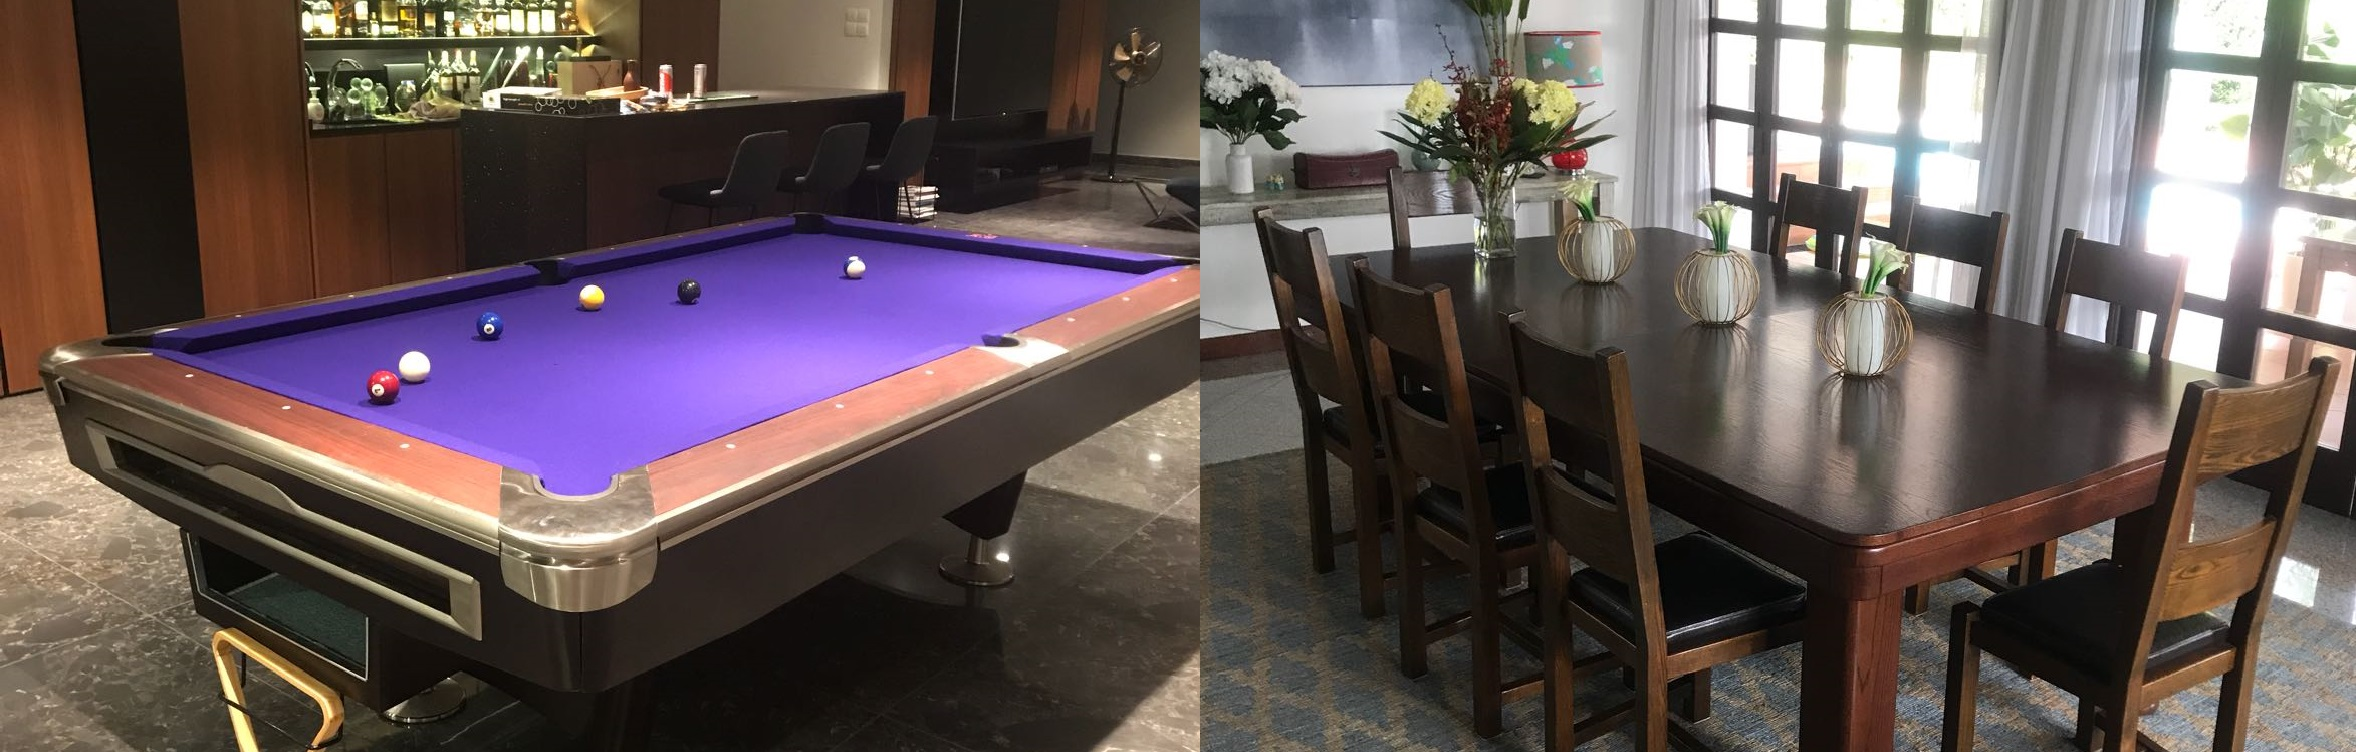 Pool Table / Dining Pool Table